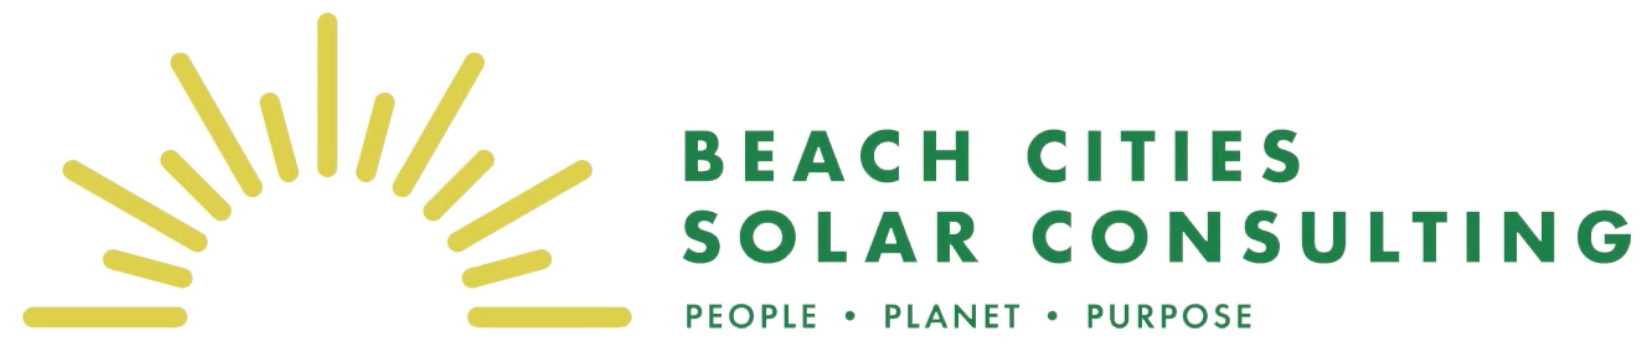 Beach Cities Solar Consulting logo